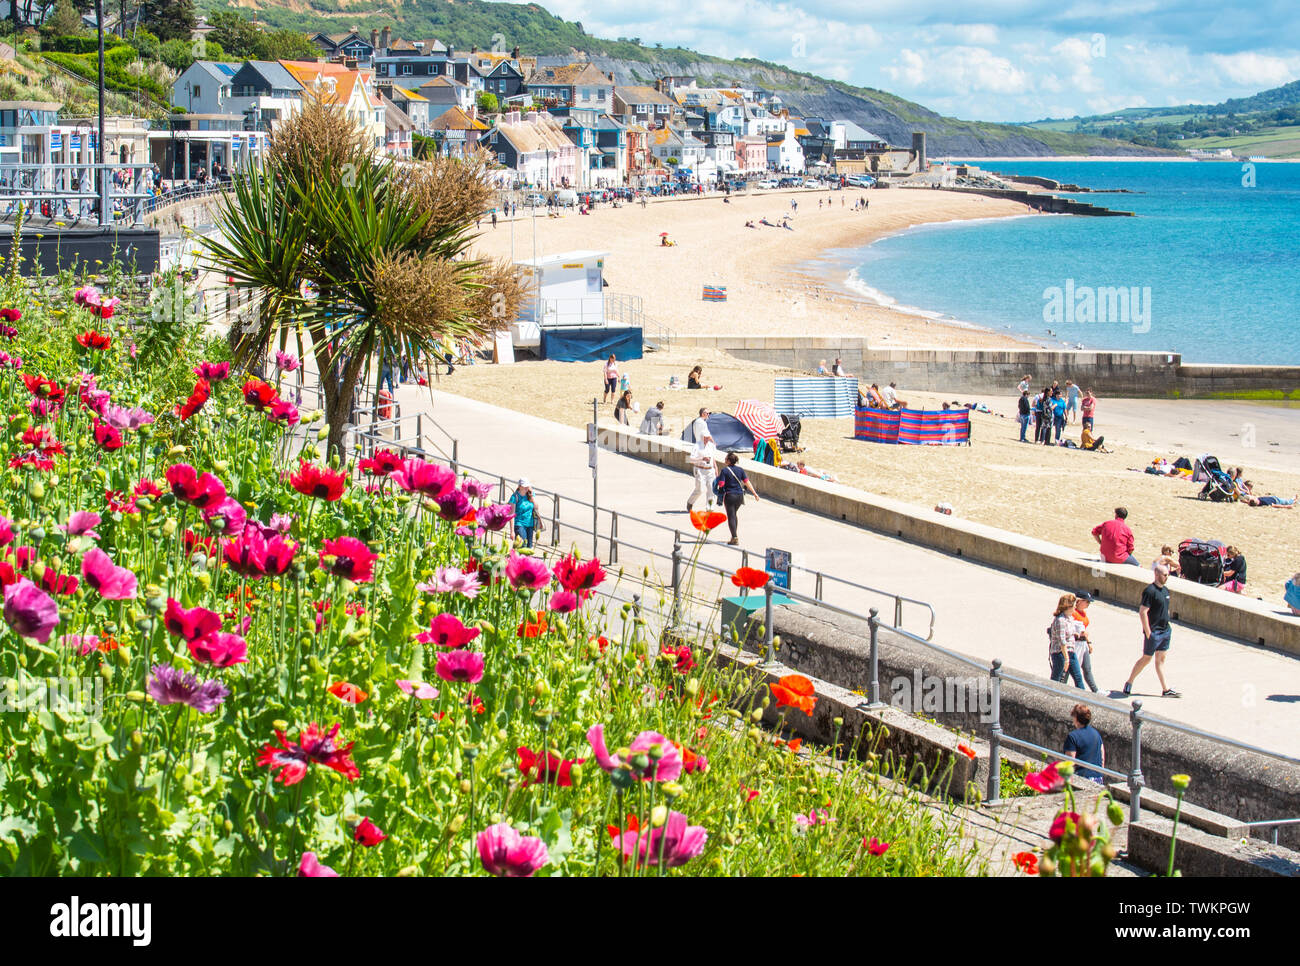 Lyme Regis, Dorset, UK. 21st June 2019. UK Weather: After a cloudy start to the summer solstice, glorious warm sunshine returns to the picturesque seaside resort of Lyme Regis. Visitors enjoy the welcome return of the sun and blue skies on the sandy beach and look forward to the warm and sunny conditions forecast over the weekend.  Credit: Celia McMahon/Alamy Live News. - Stock Image